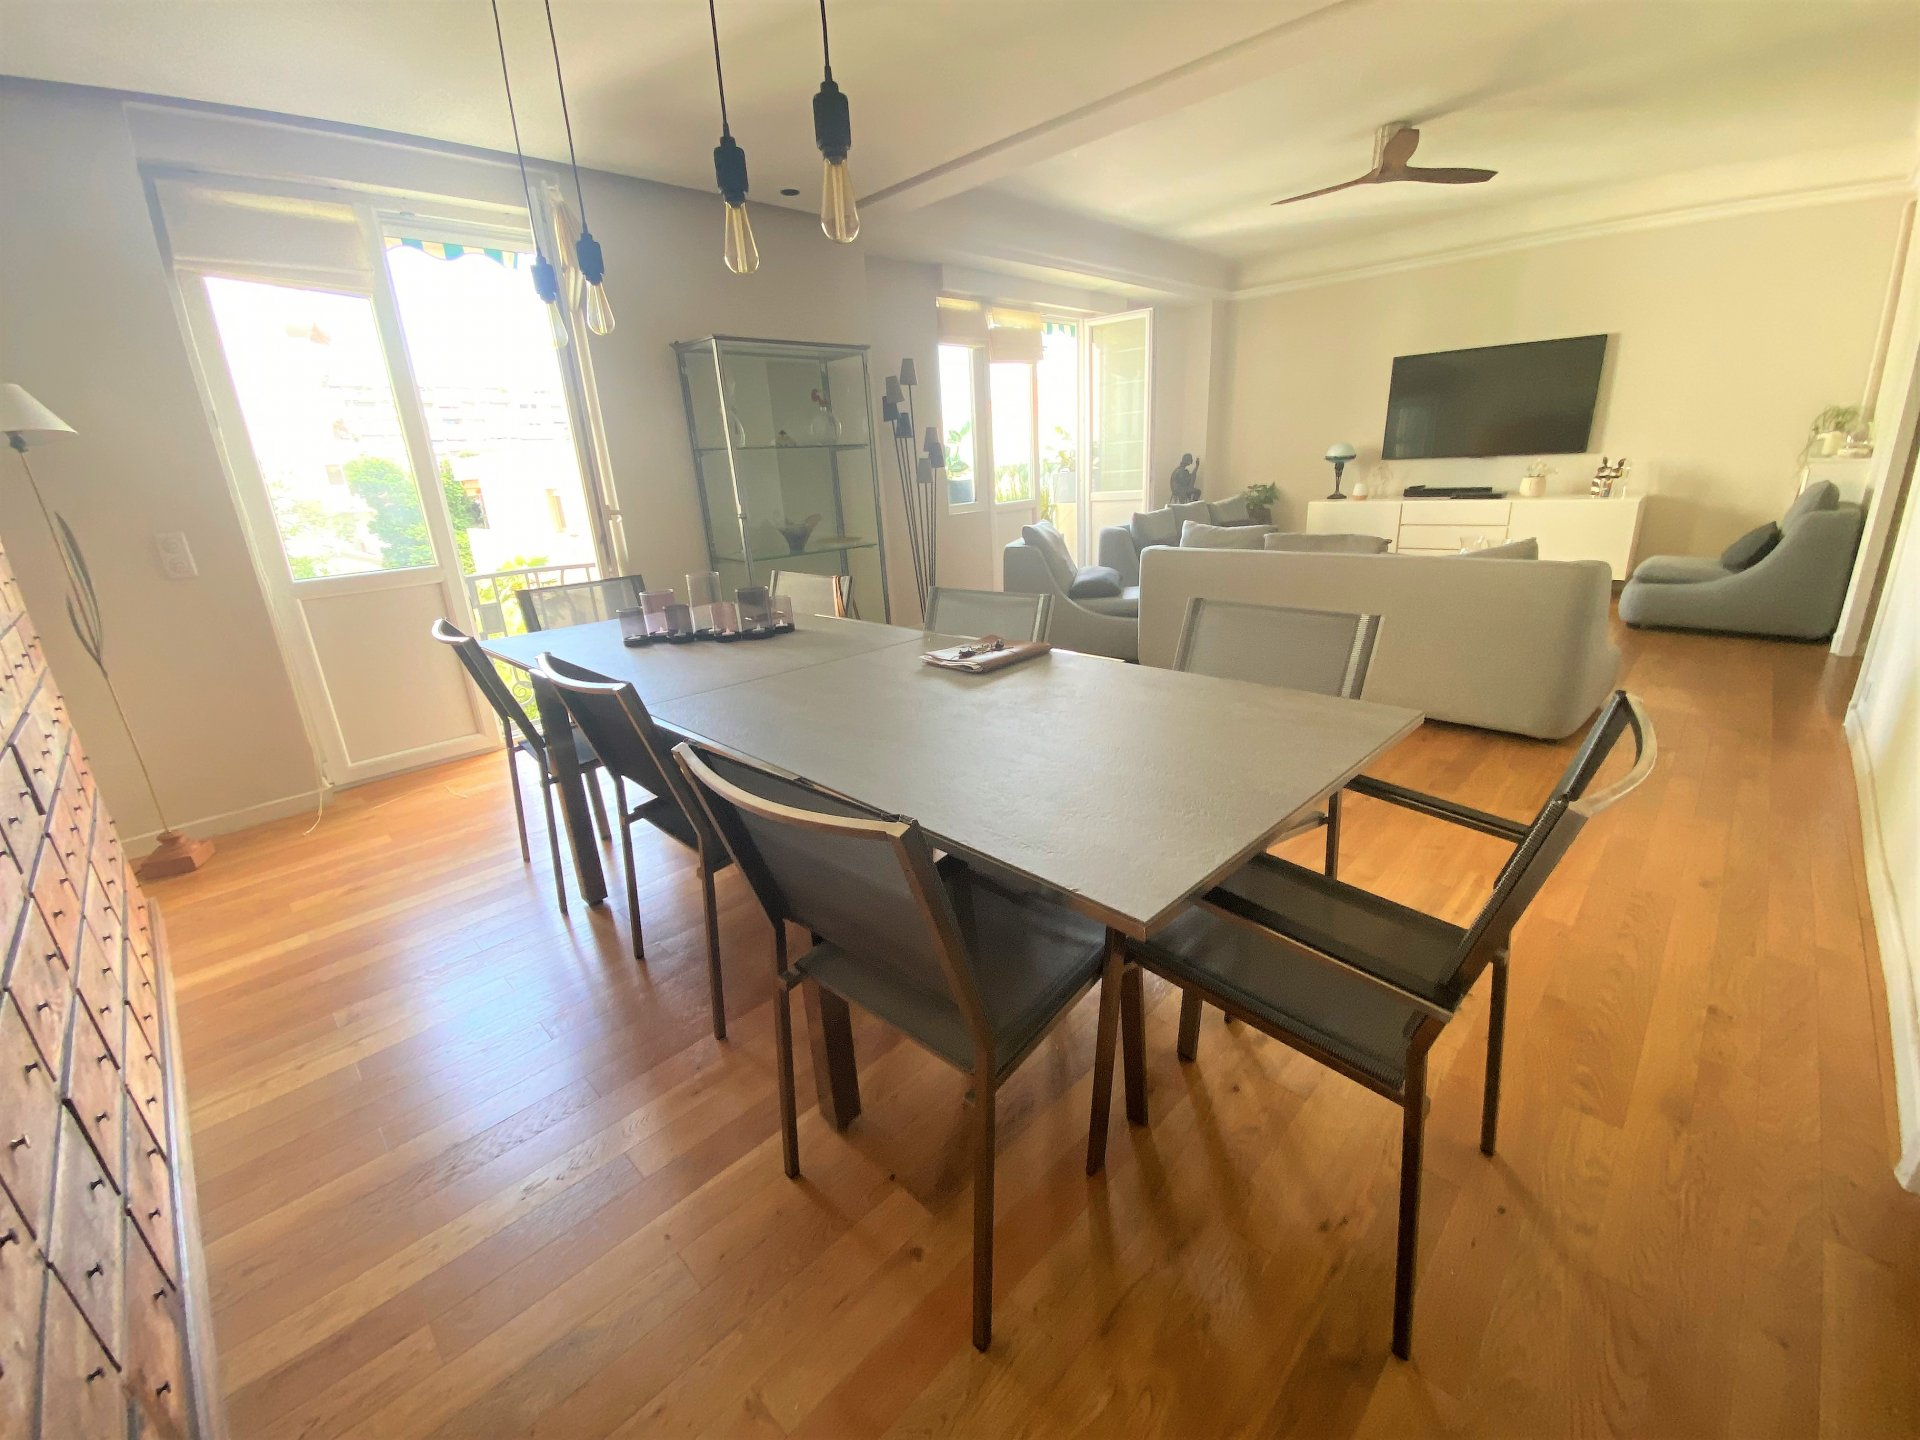 CANNES near beaches sale Apartment 3 Rooms BOURGEOIS renovated